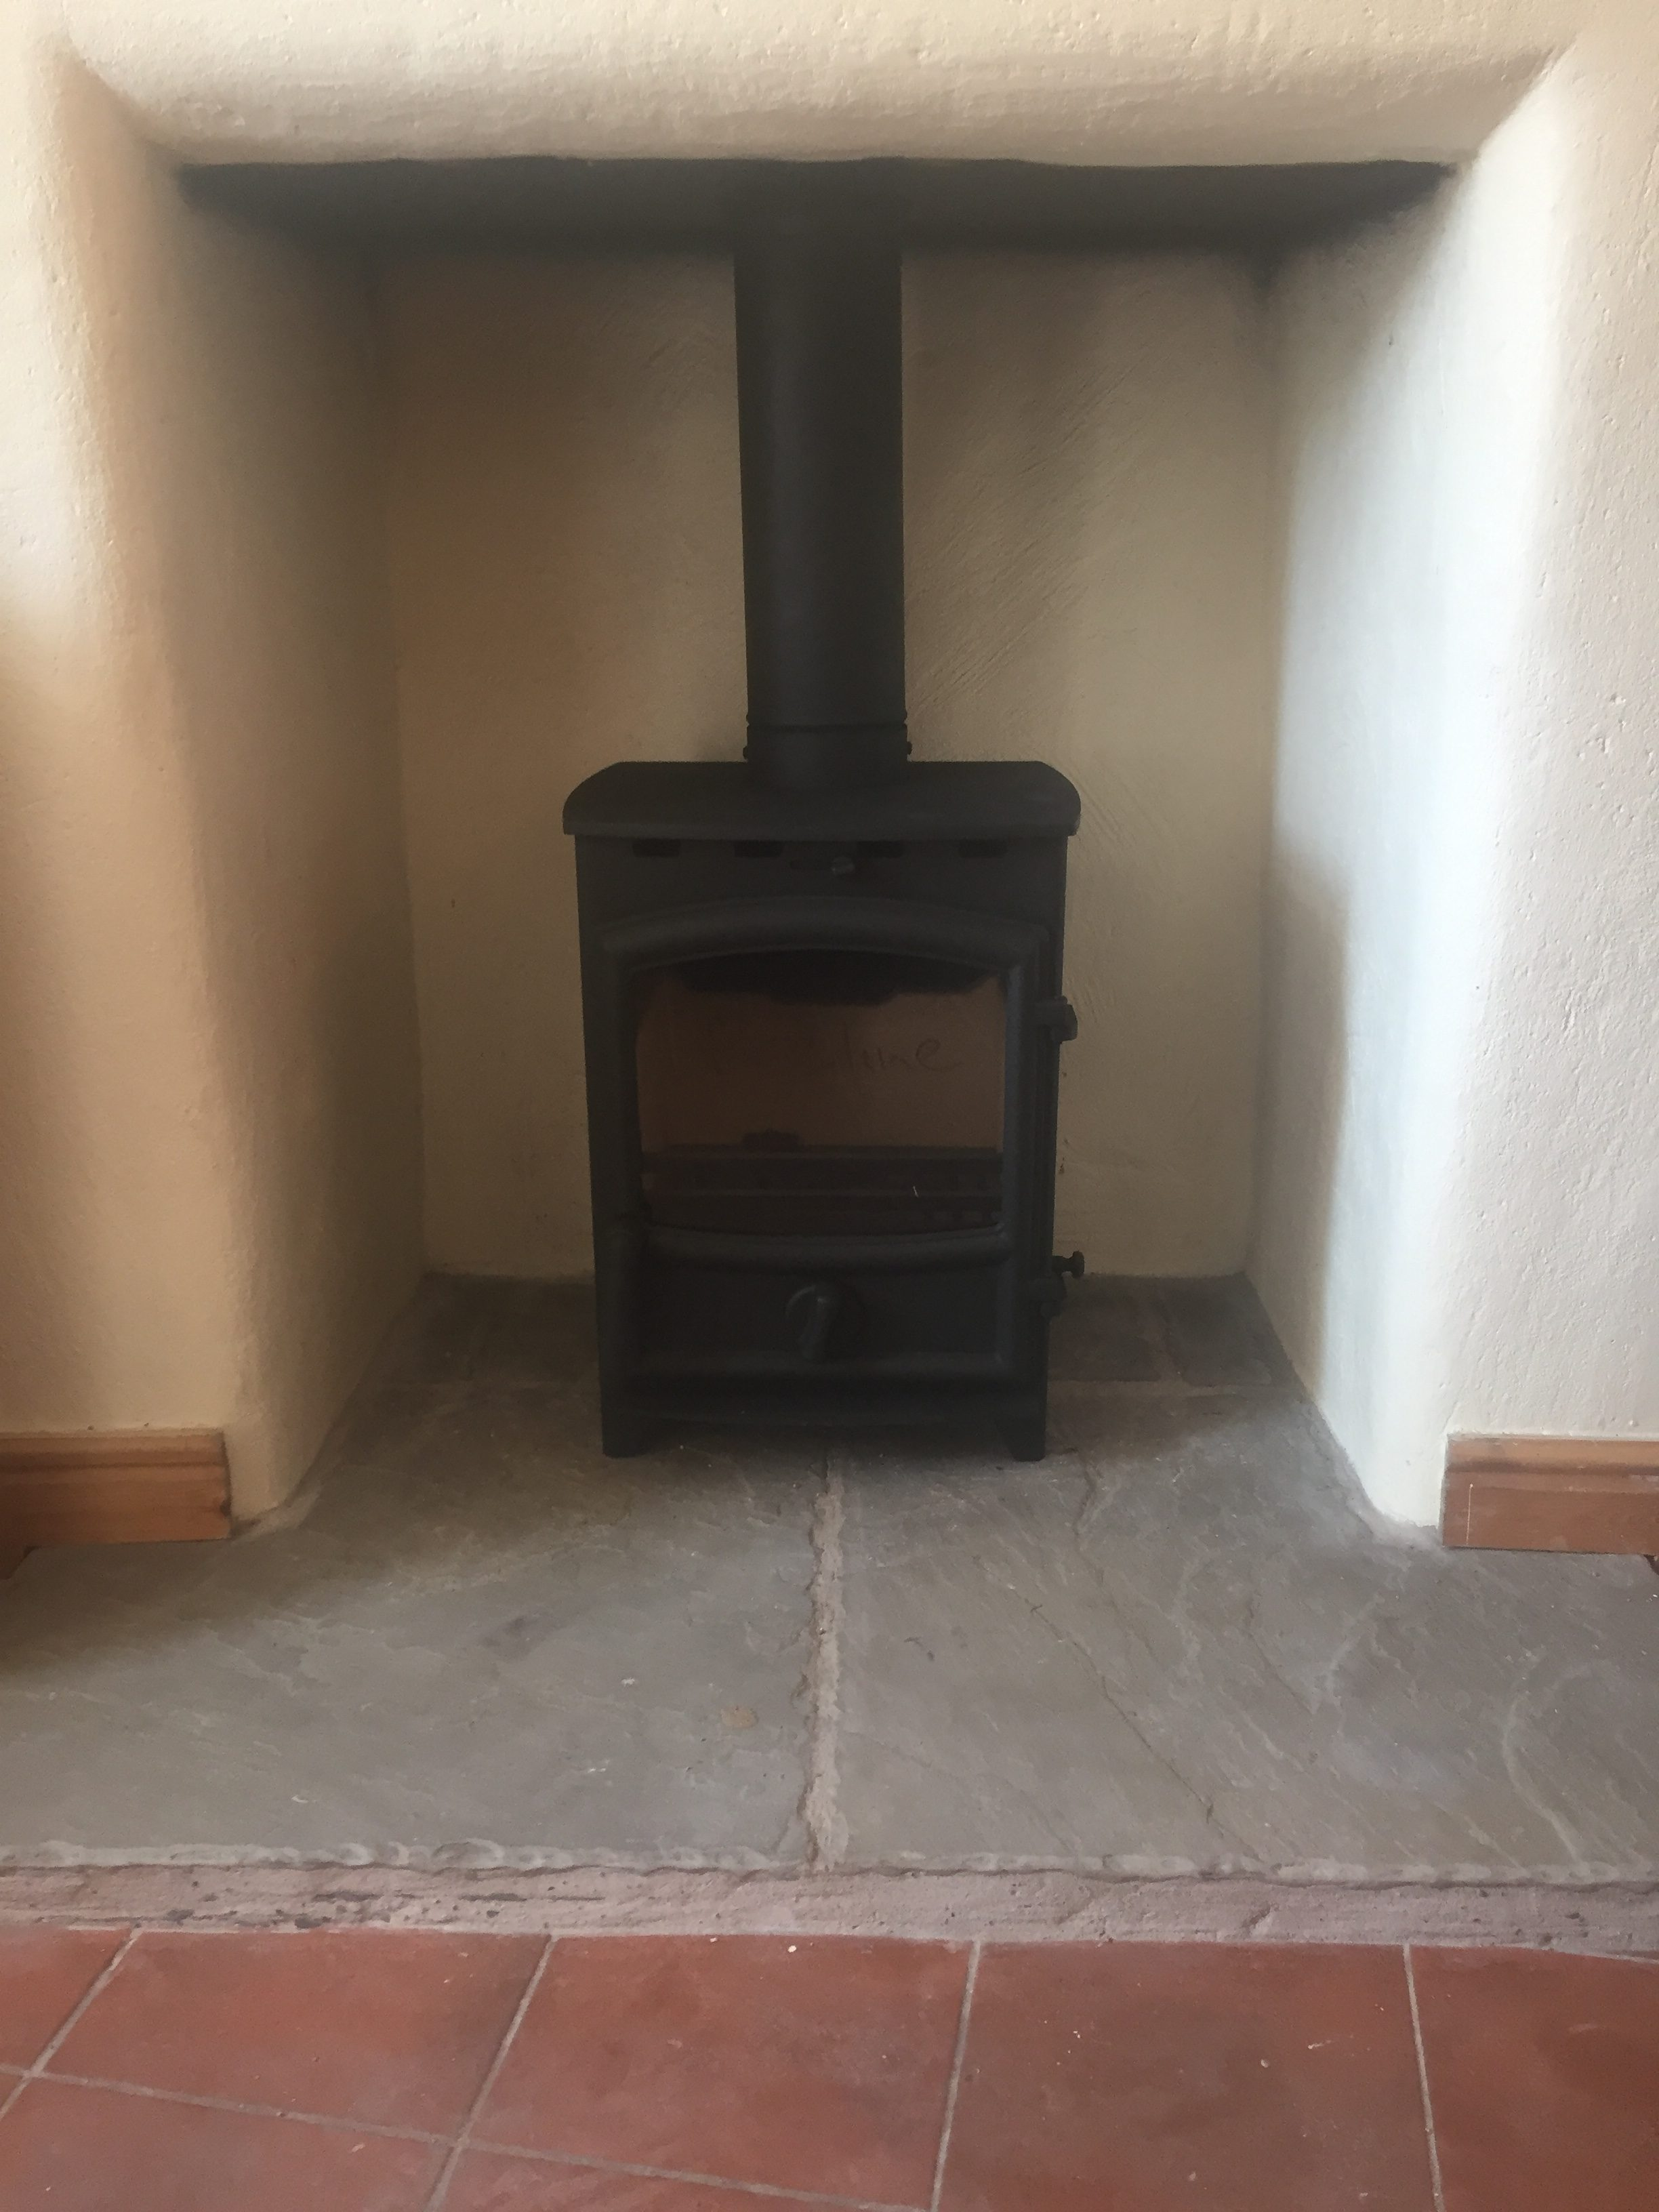 Again a Fireline FX5 in a rendered fireplace opening this looks so much better than the old gas fire it replaces